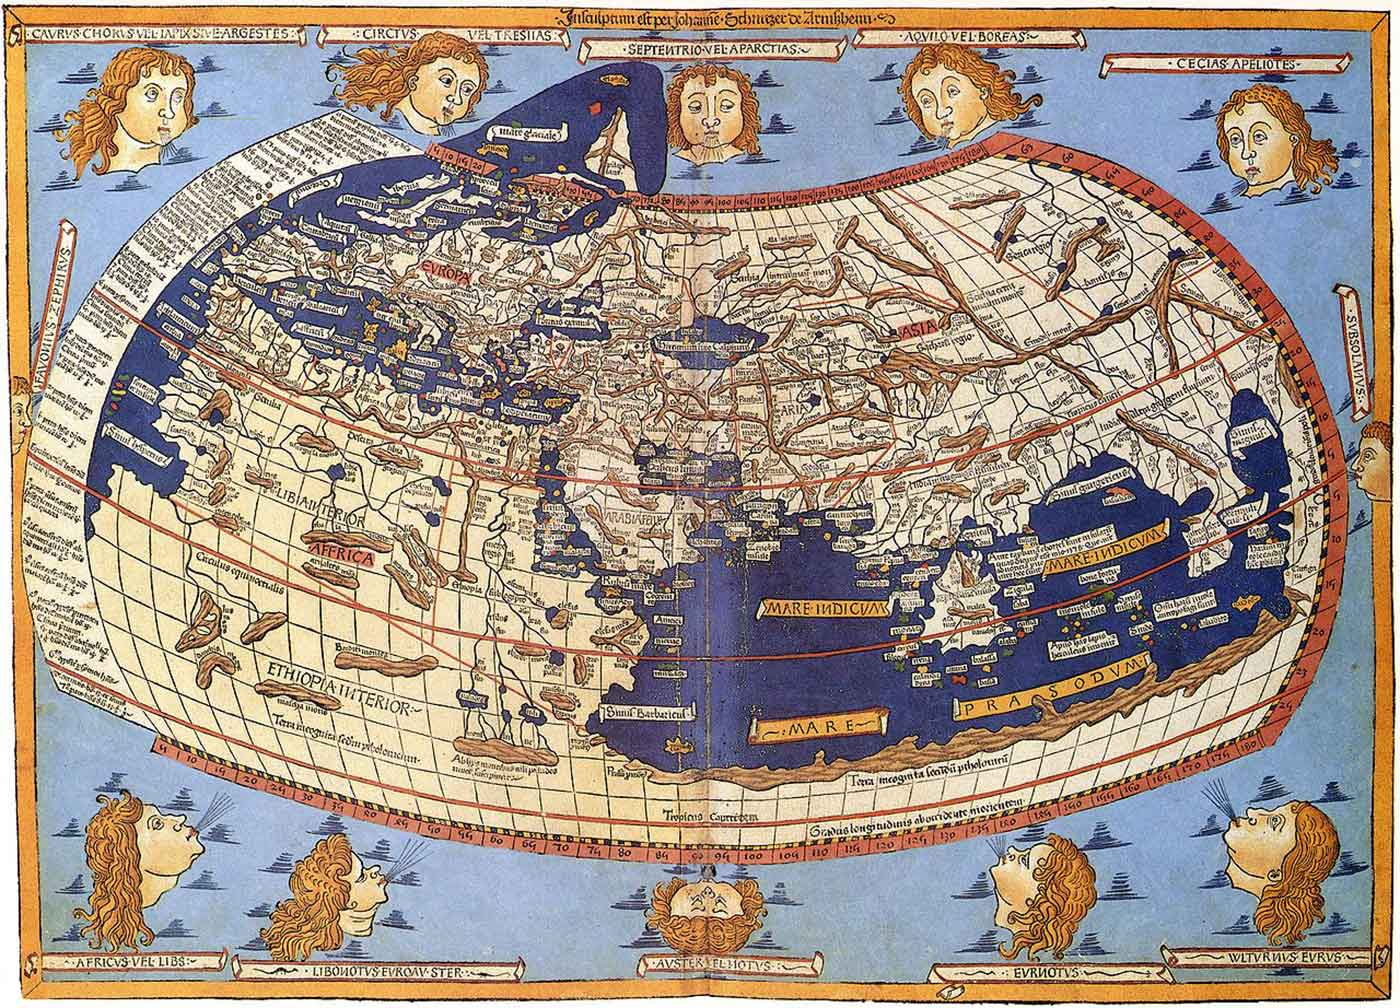 The world map from Leinhart Holle's 1482 edition of Nicolaus Germanus's emendations to Jacobus Angelus's 1406 Latin translation of Maximus Planudes's late-13th century rediscovered Greek manuscripts of Ptolemy's 2nd-century Geography.